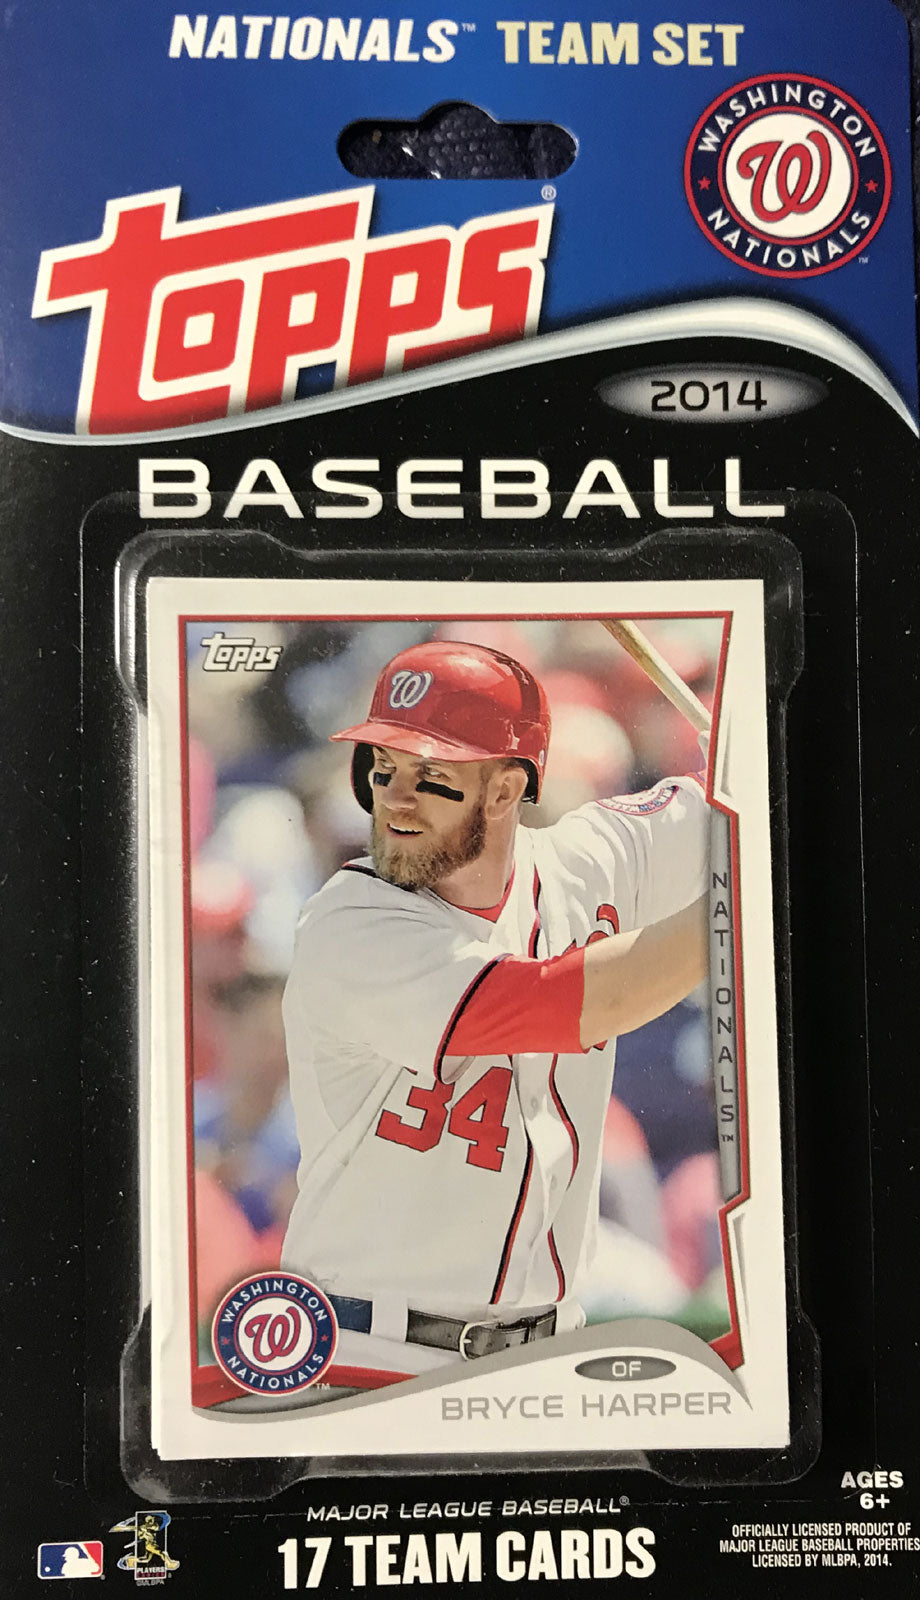 Washington Nationals 2014 Topps Factory Sealed 17 Card Team Set